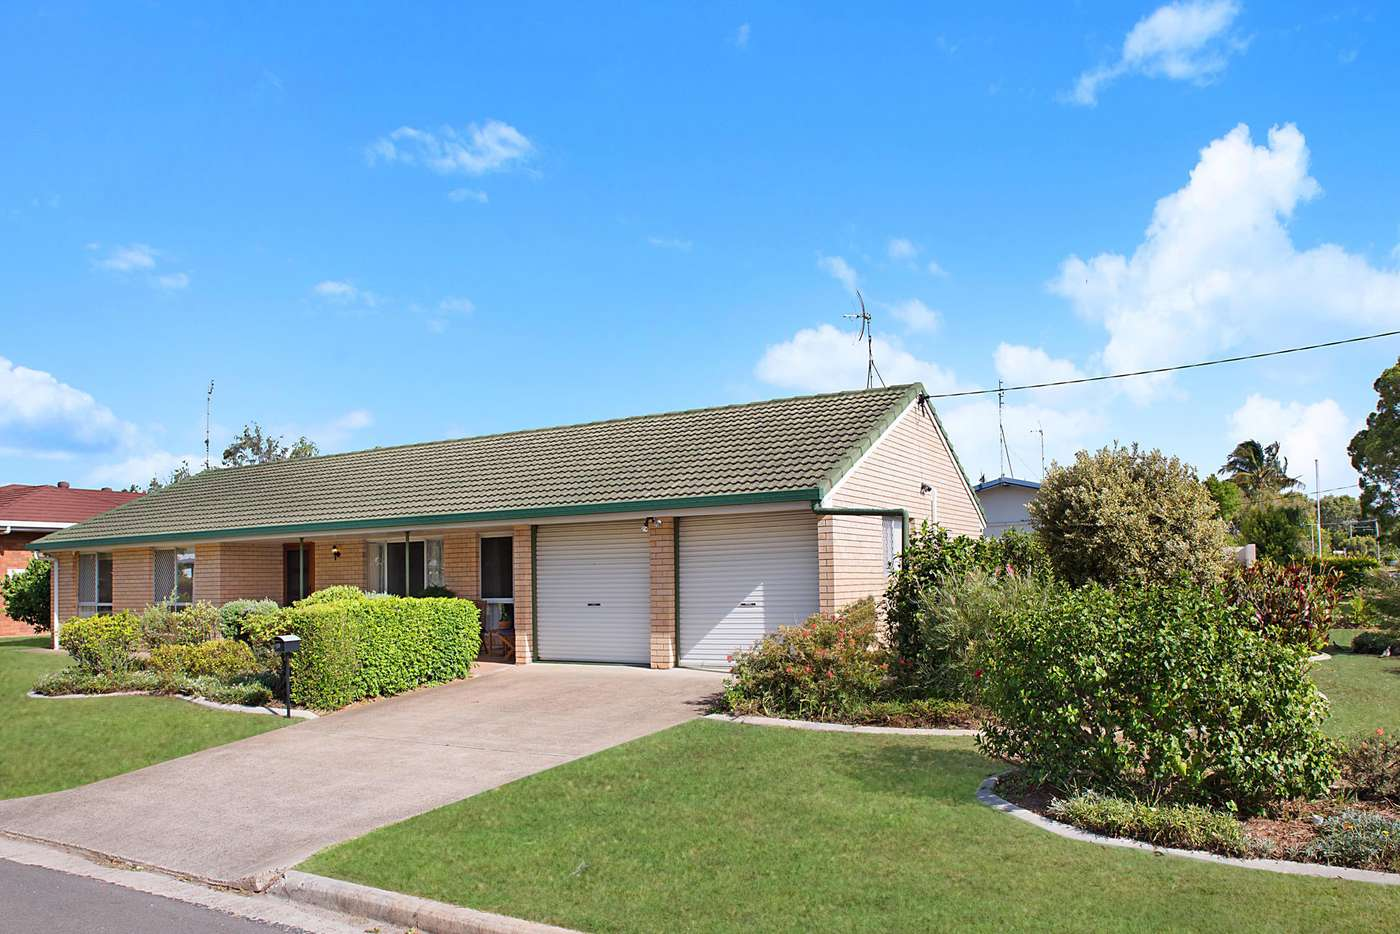 Main view of Homely house listing, 59 Wavell Avenue, Caloundra QLD 4551